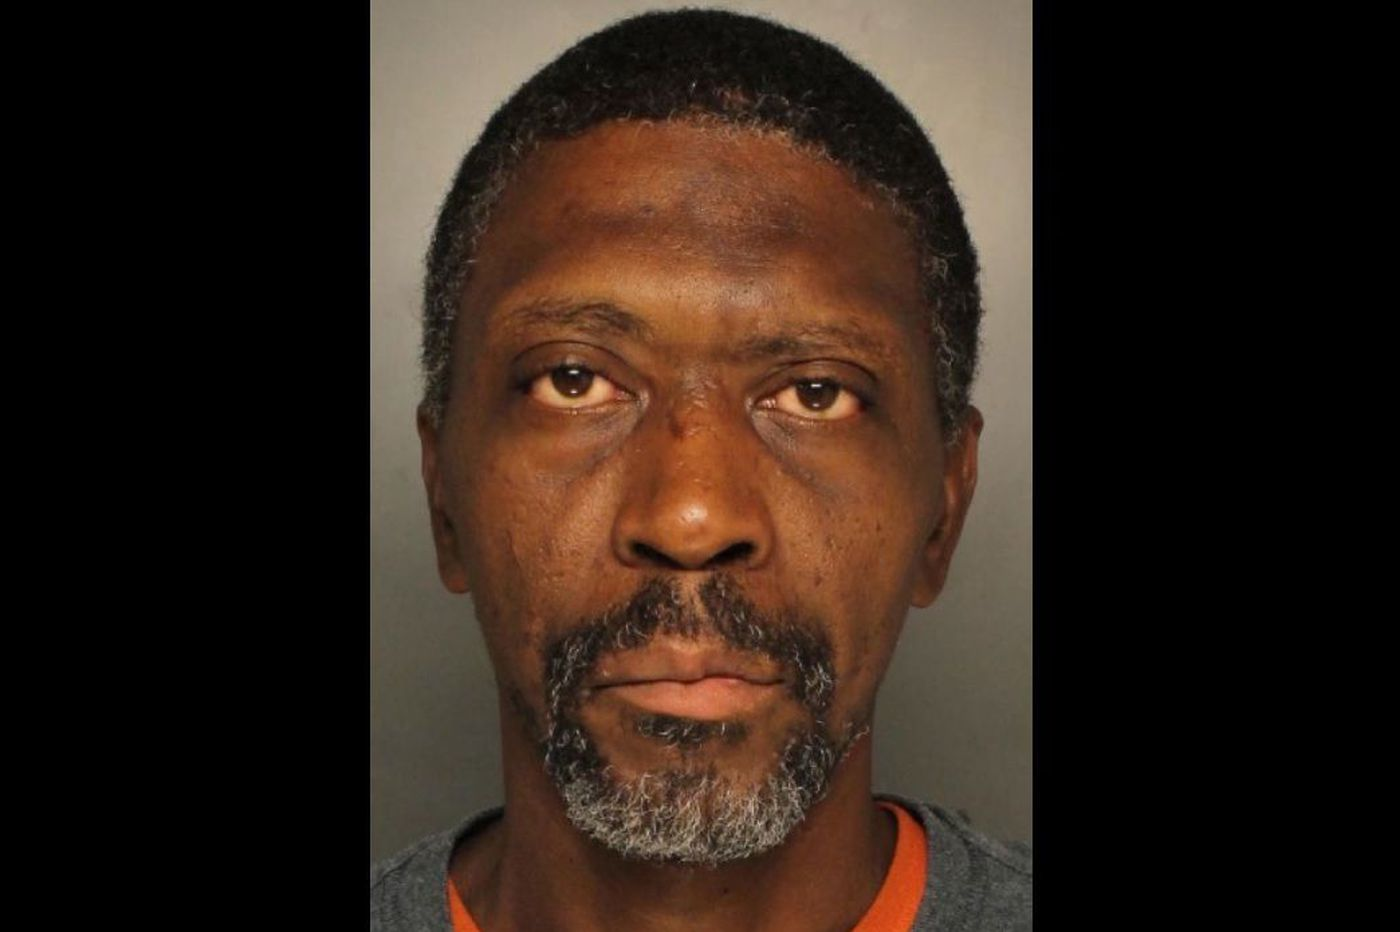 Homeless man charged with attack on jogger in Spring Garden